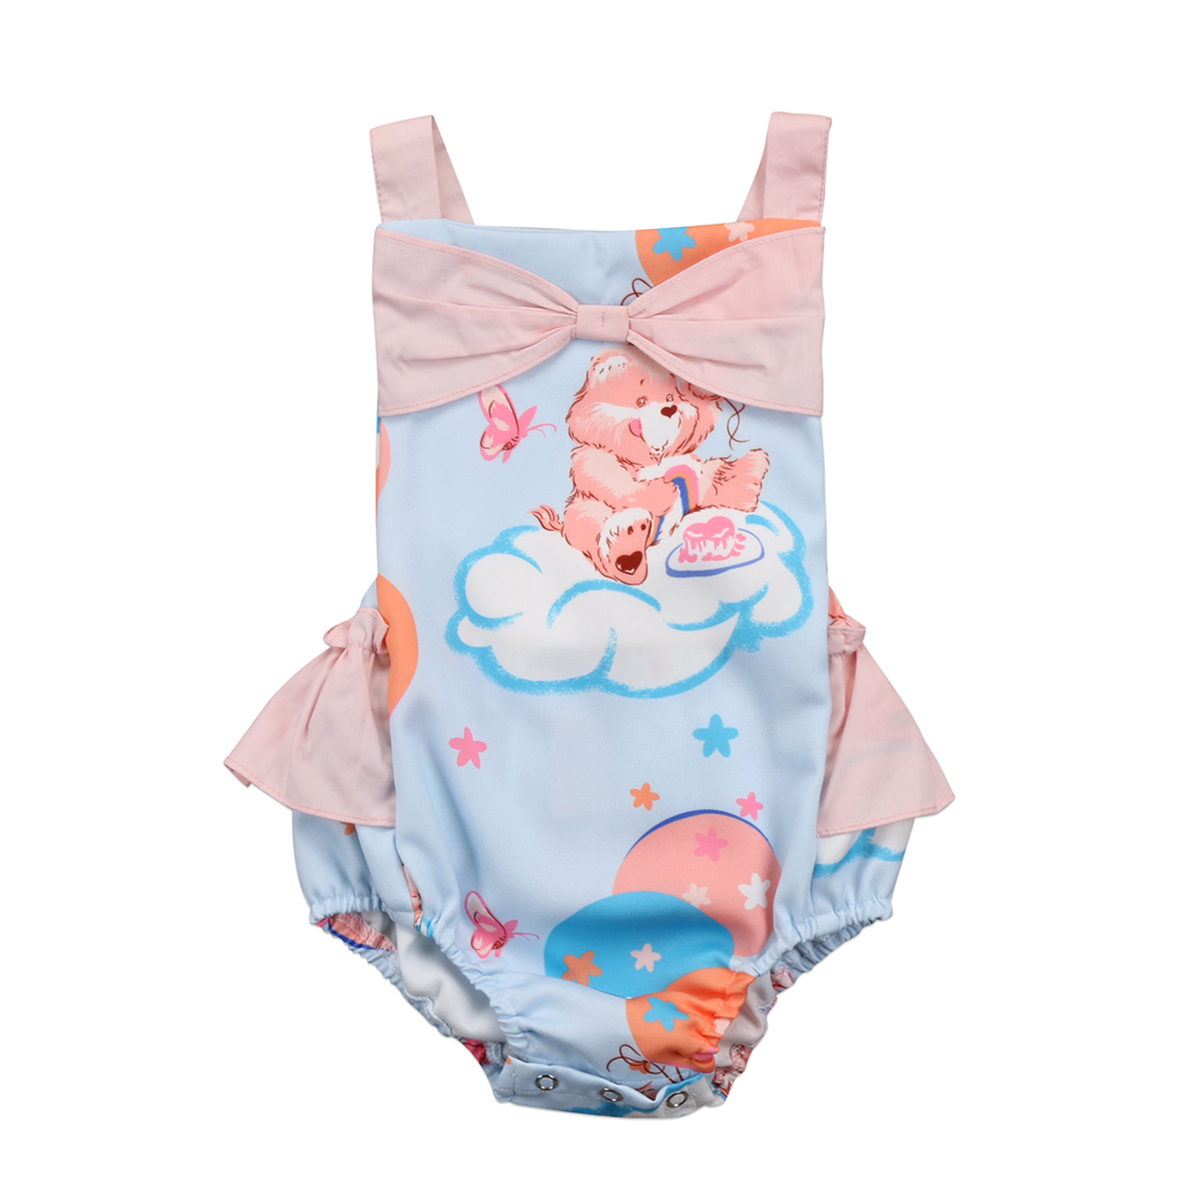 Mother & Kids Infant Kids Baby Boy Girl Butterfly-knot Bear Print Drawstring Covered Button Tops Clothes Jumpsuit Bodysuit Outfits Bodysuits